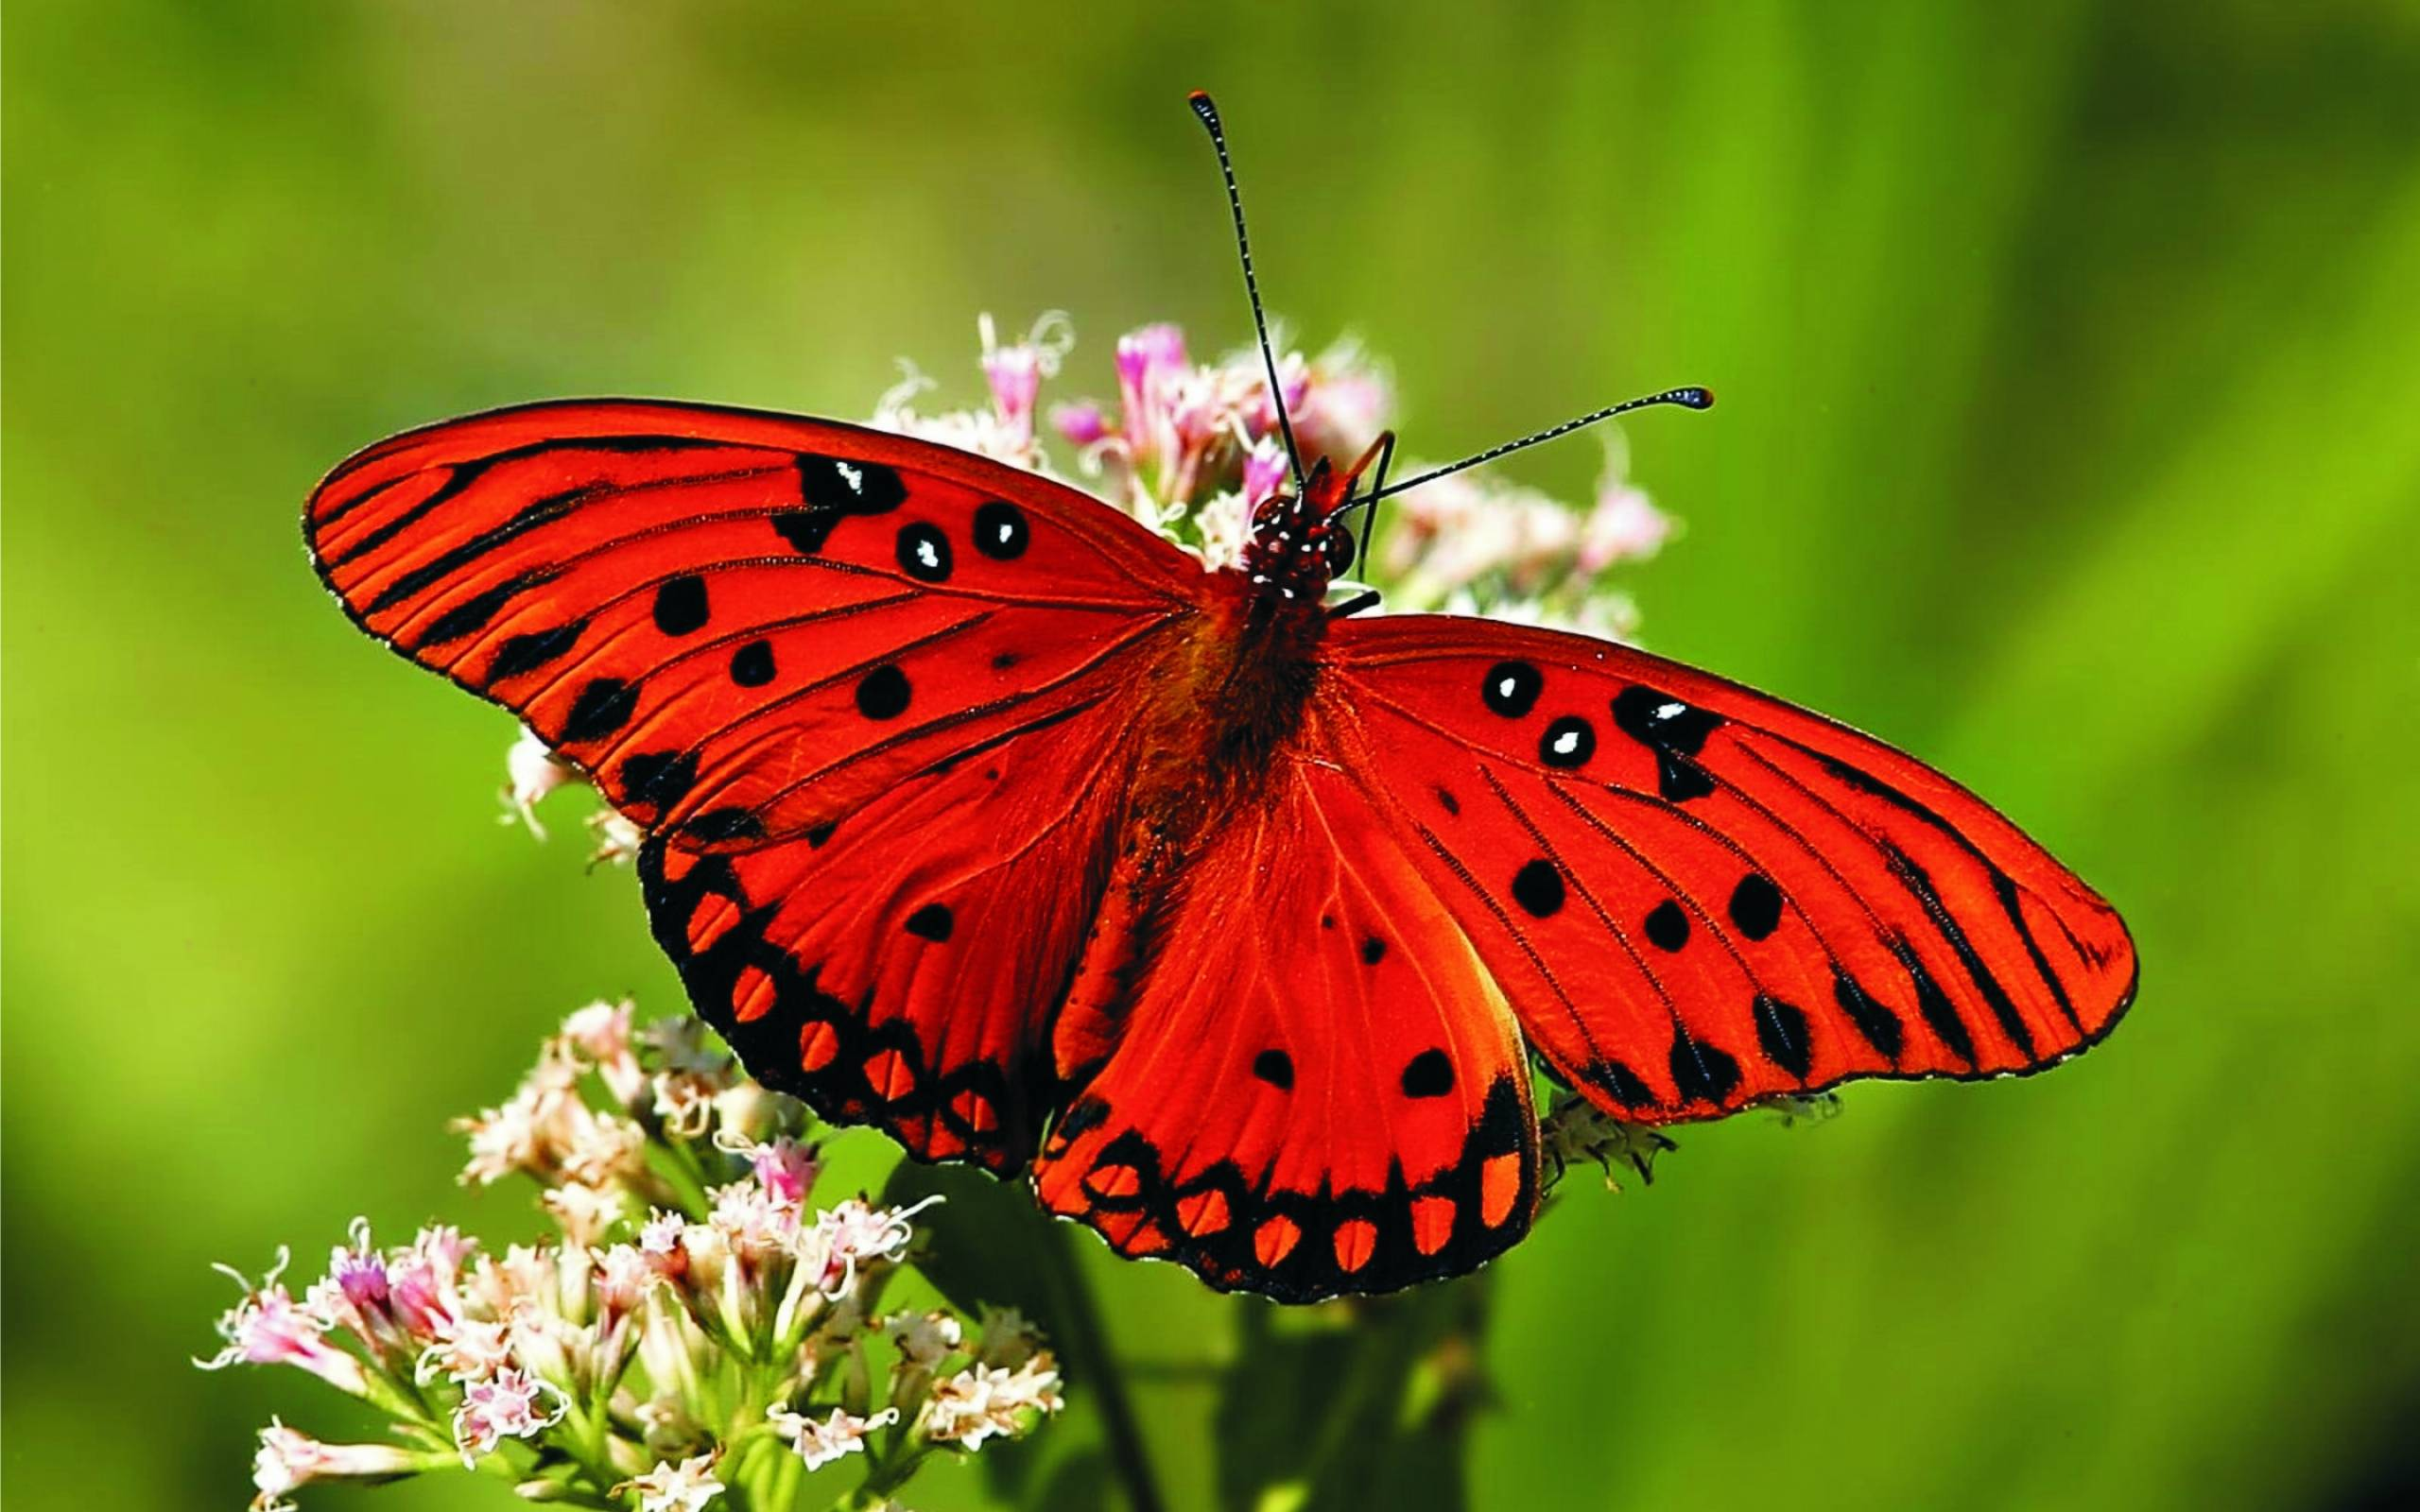 Red Butterfly on a Flower 131.95 Kb